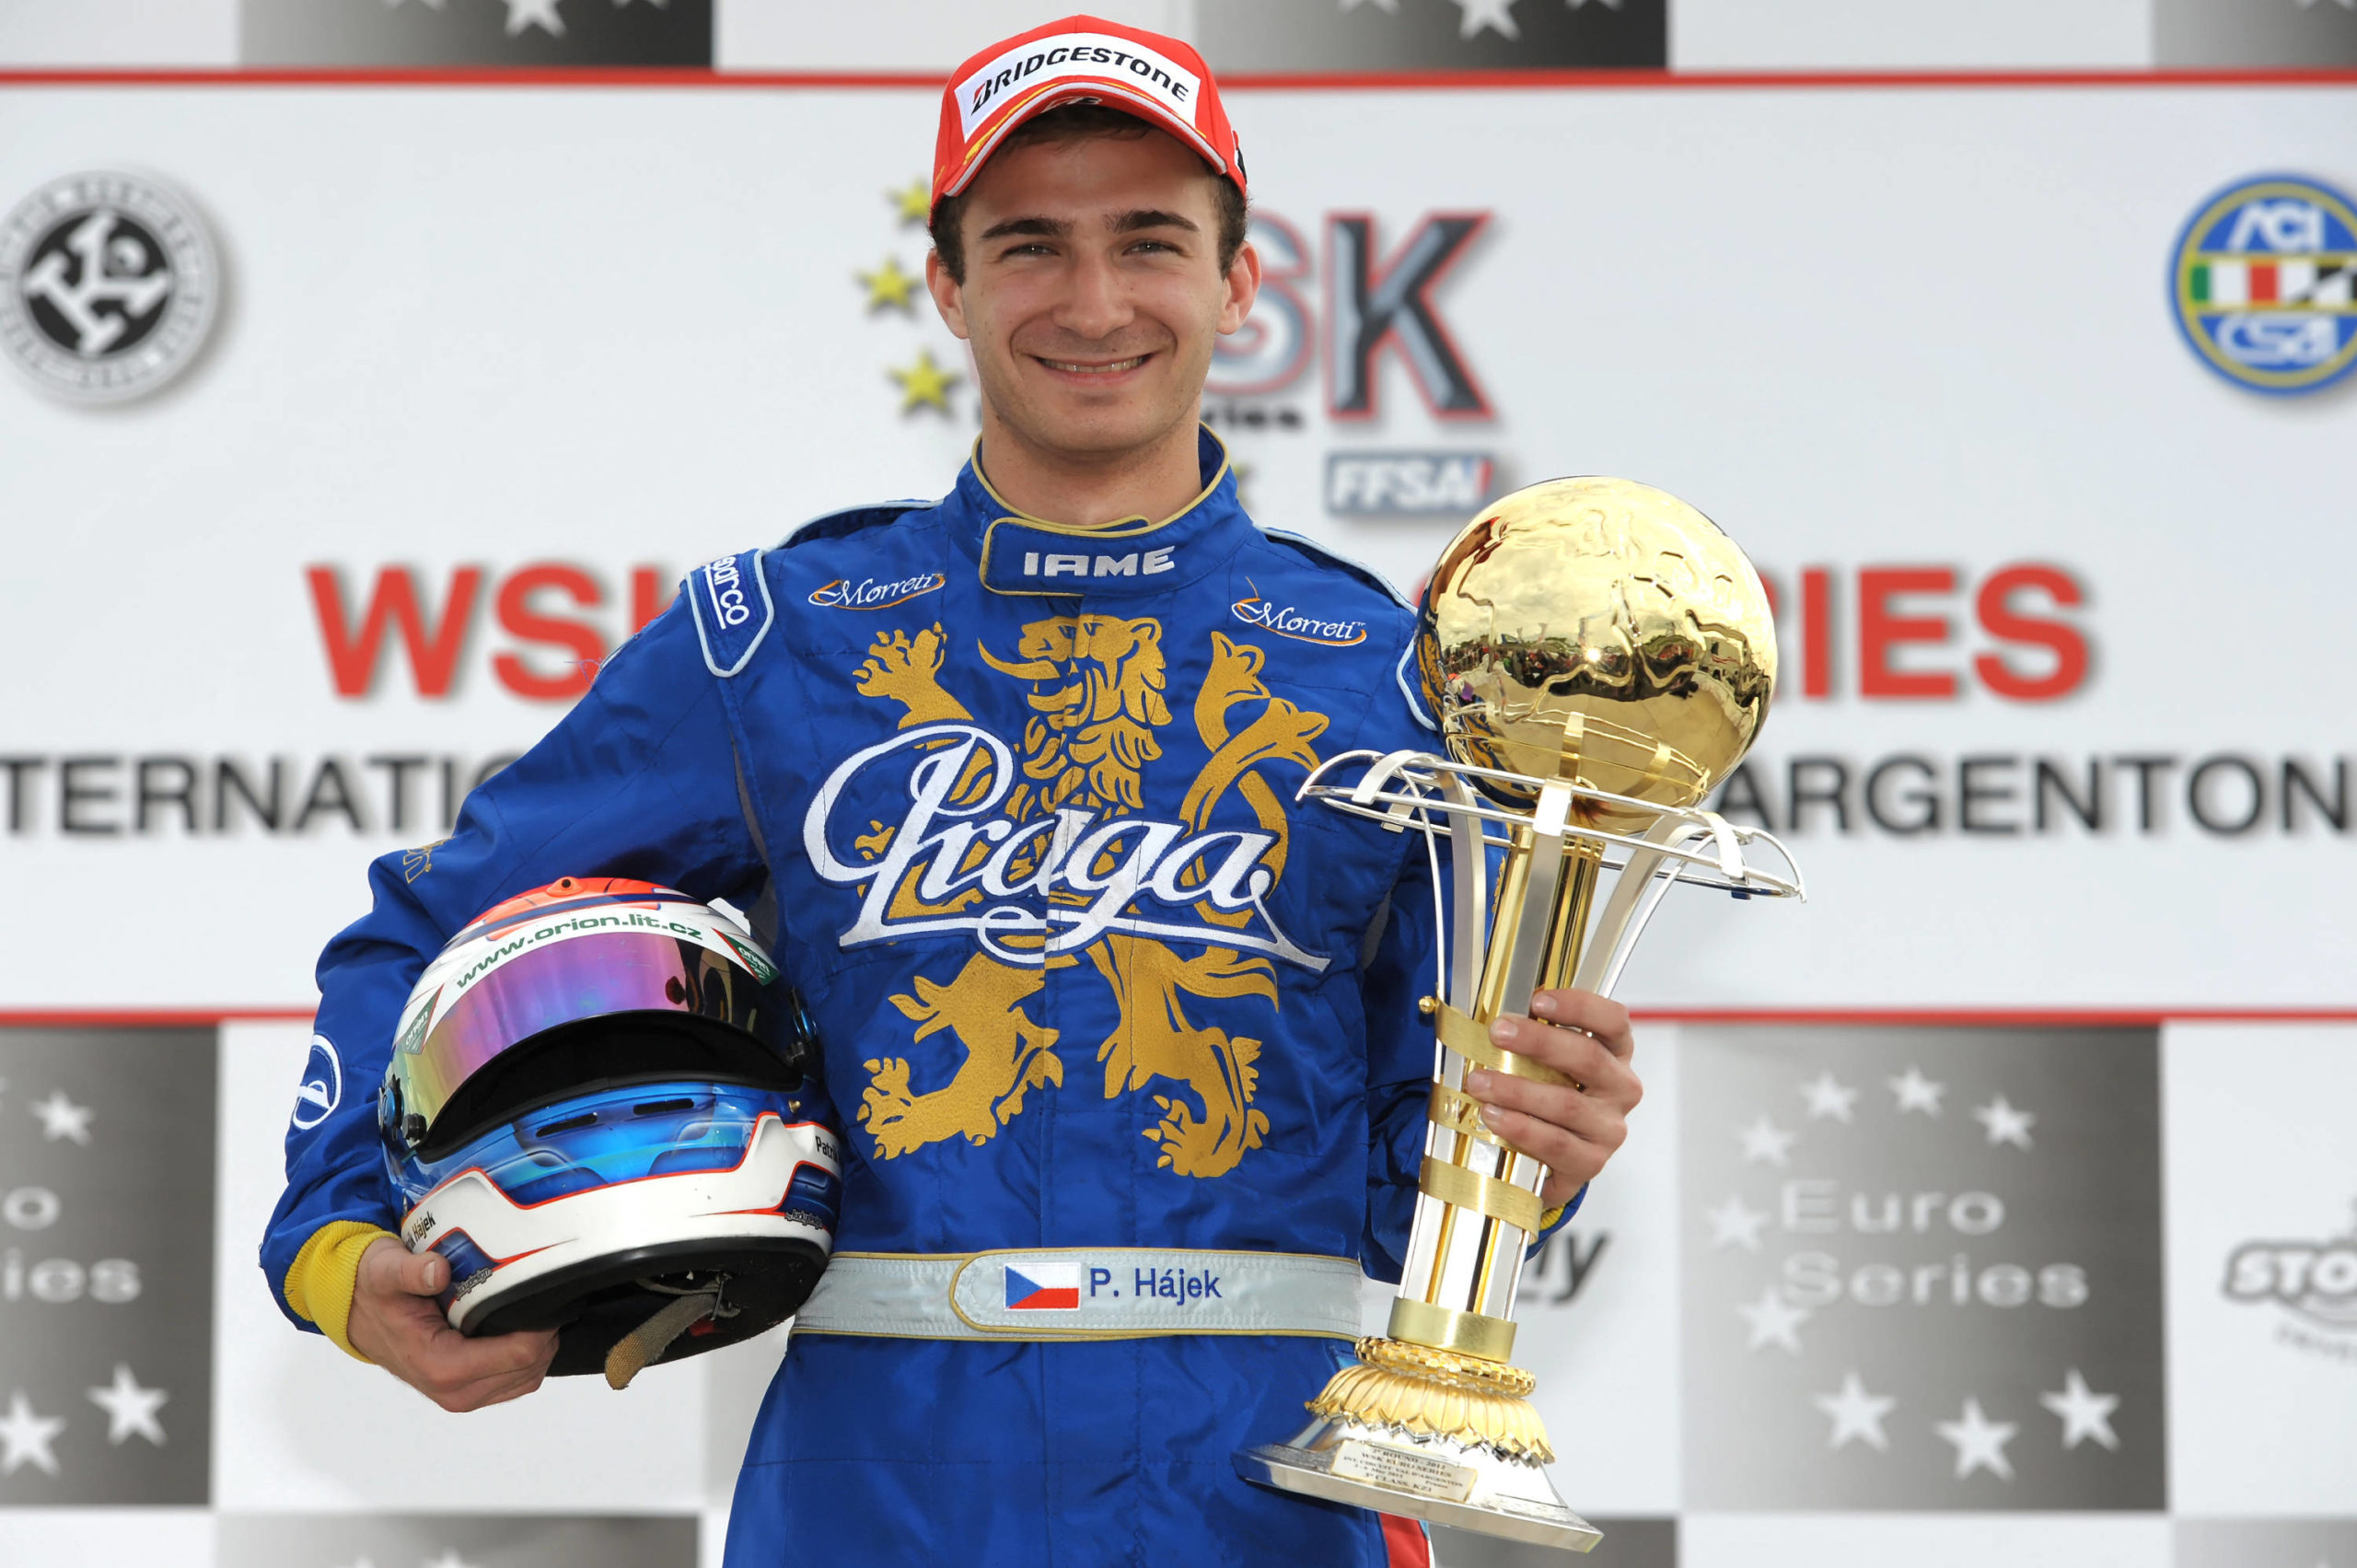 Great Podium for Praga at WSK Euro Series